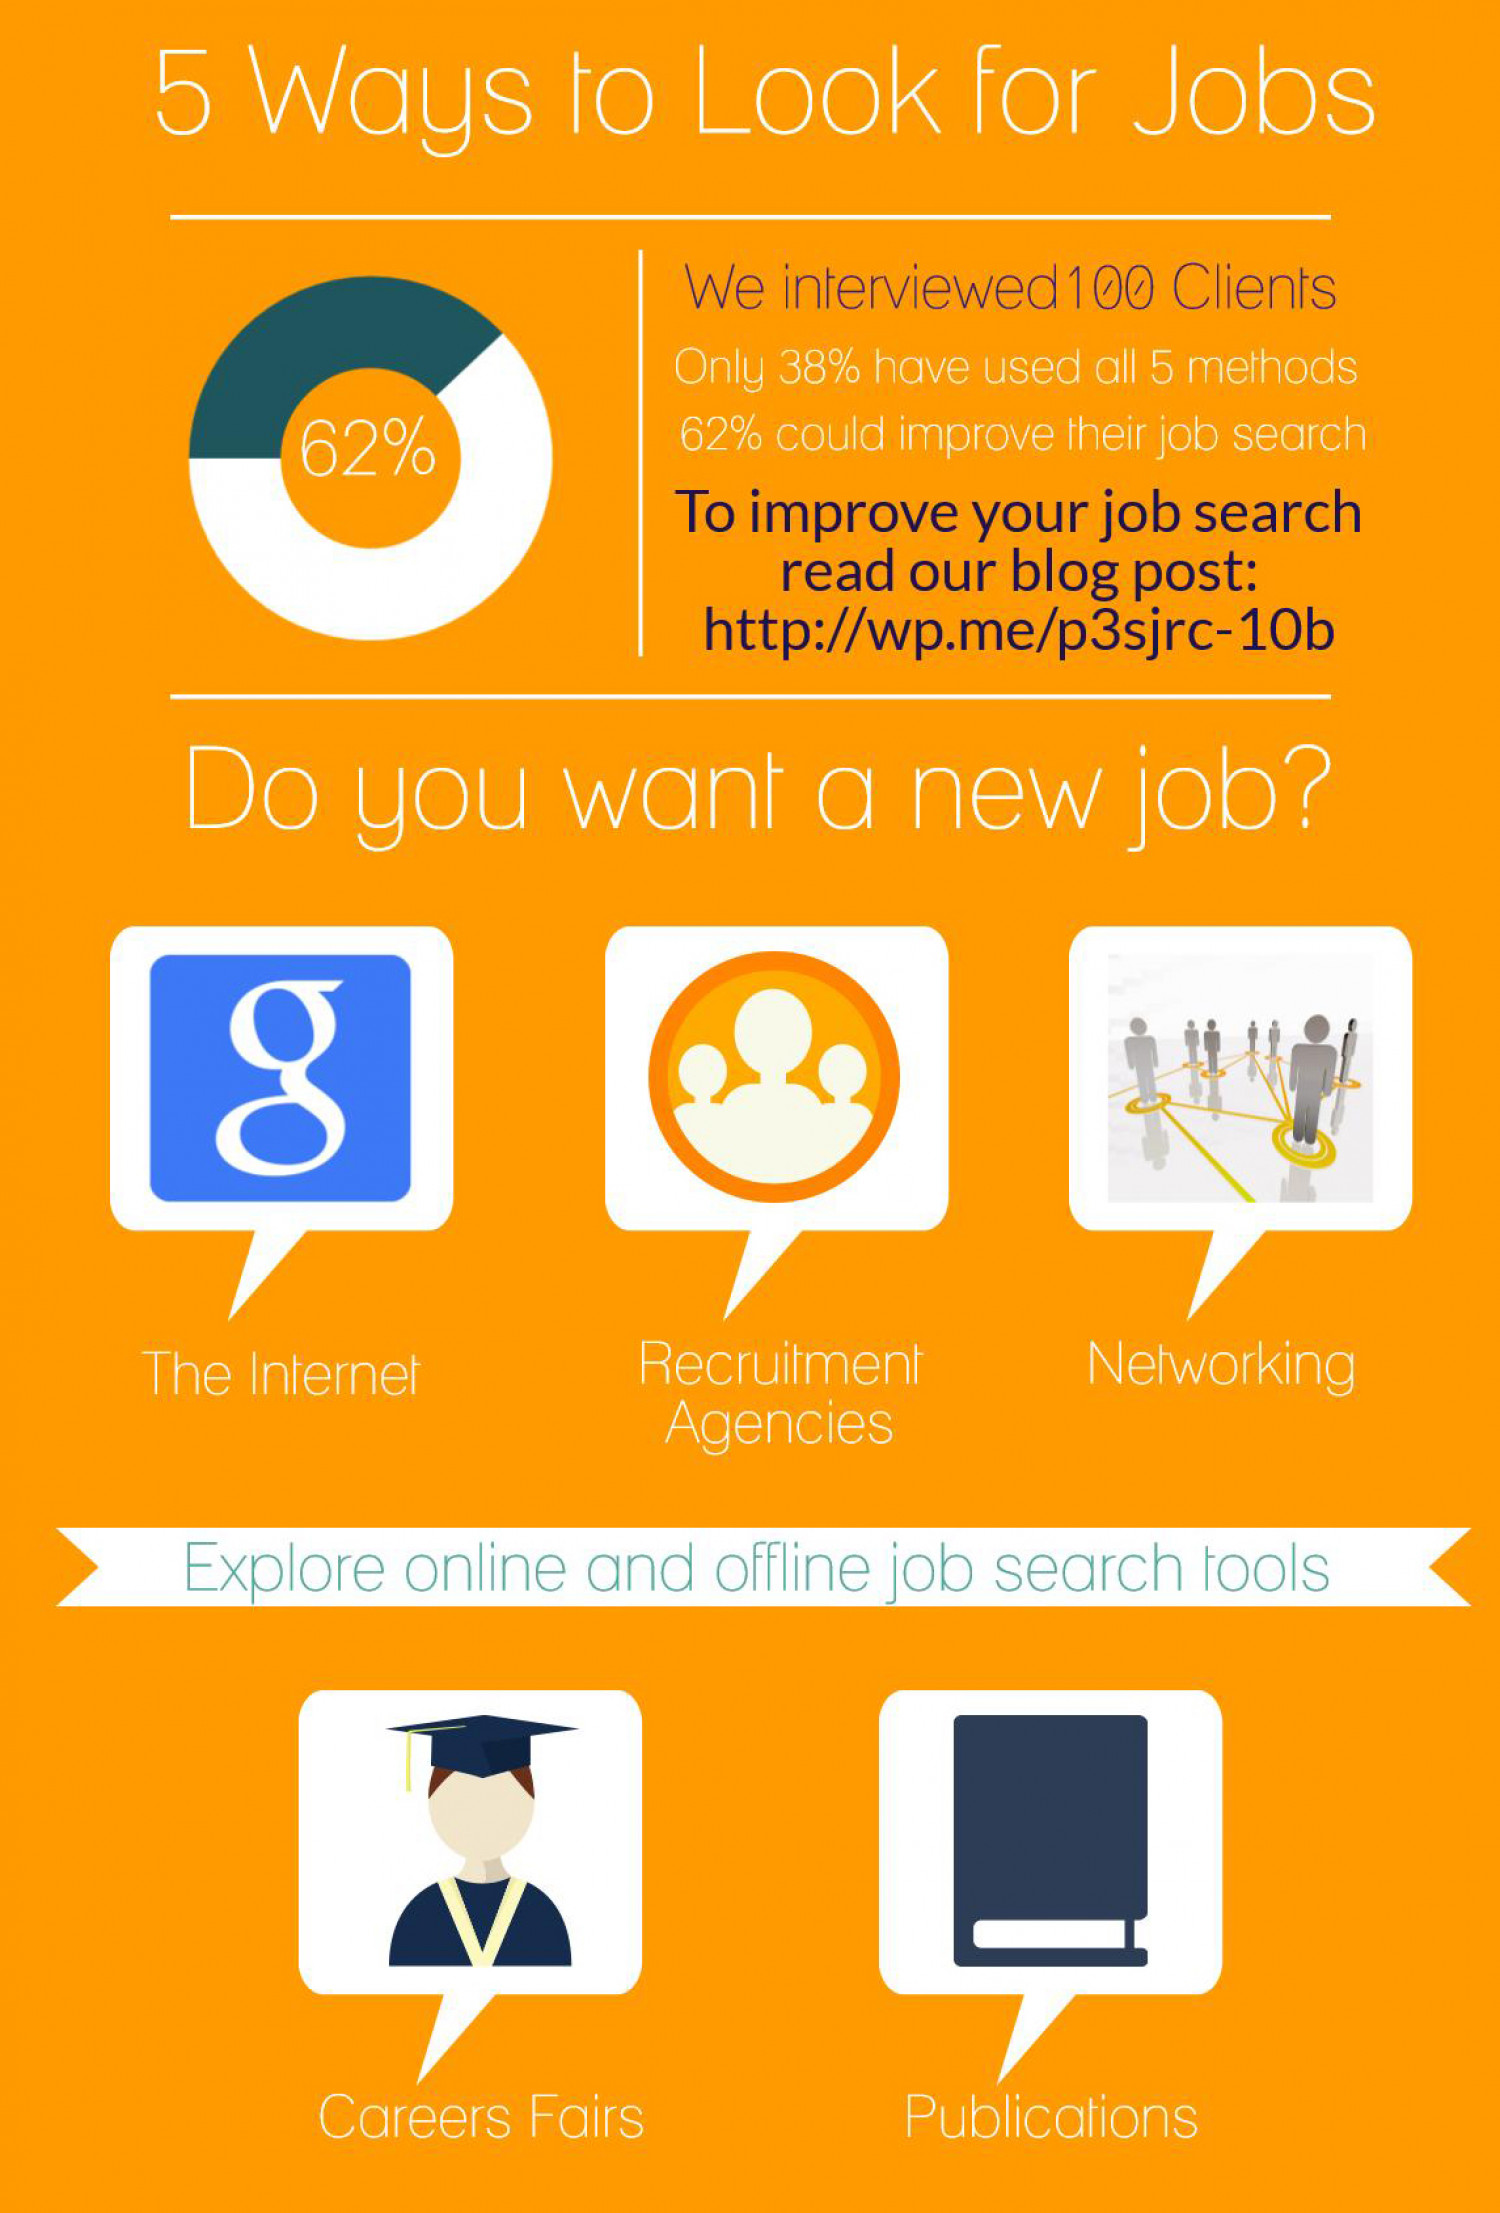 5 Ways to Search for Jobs Infographic